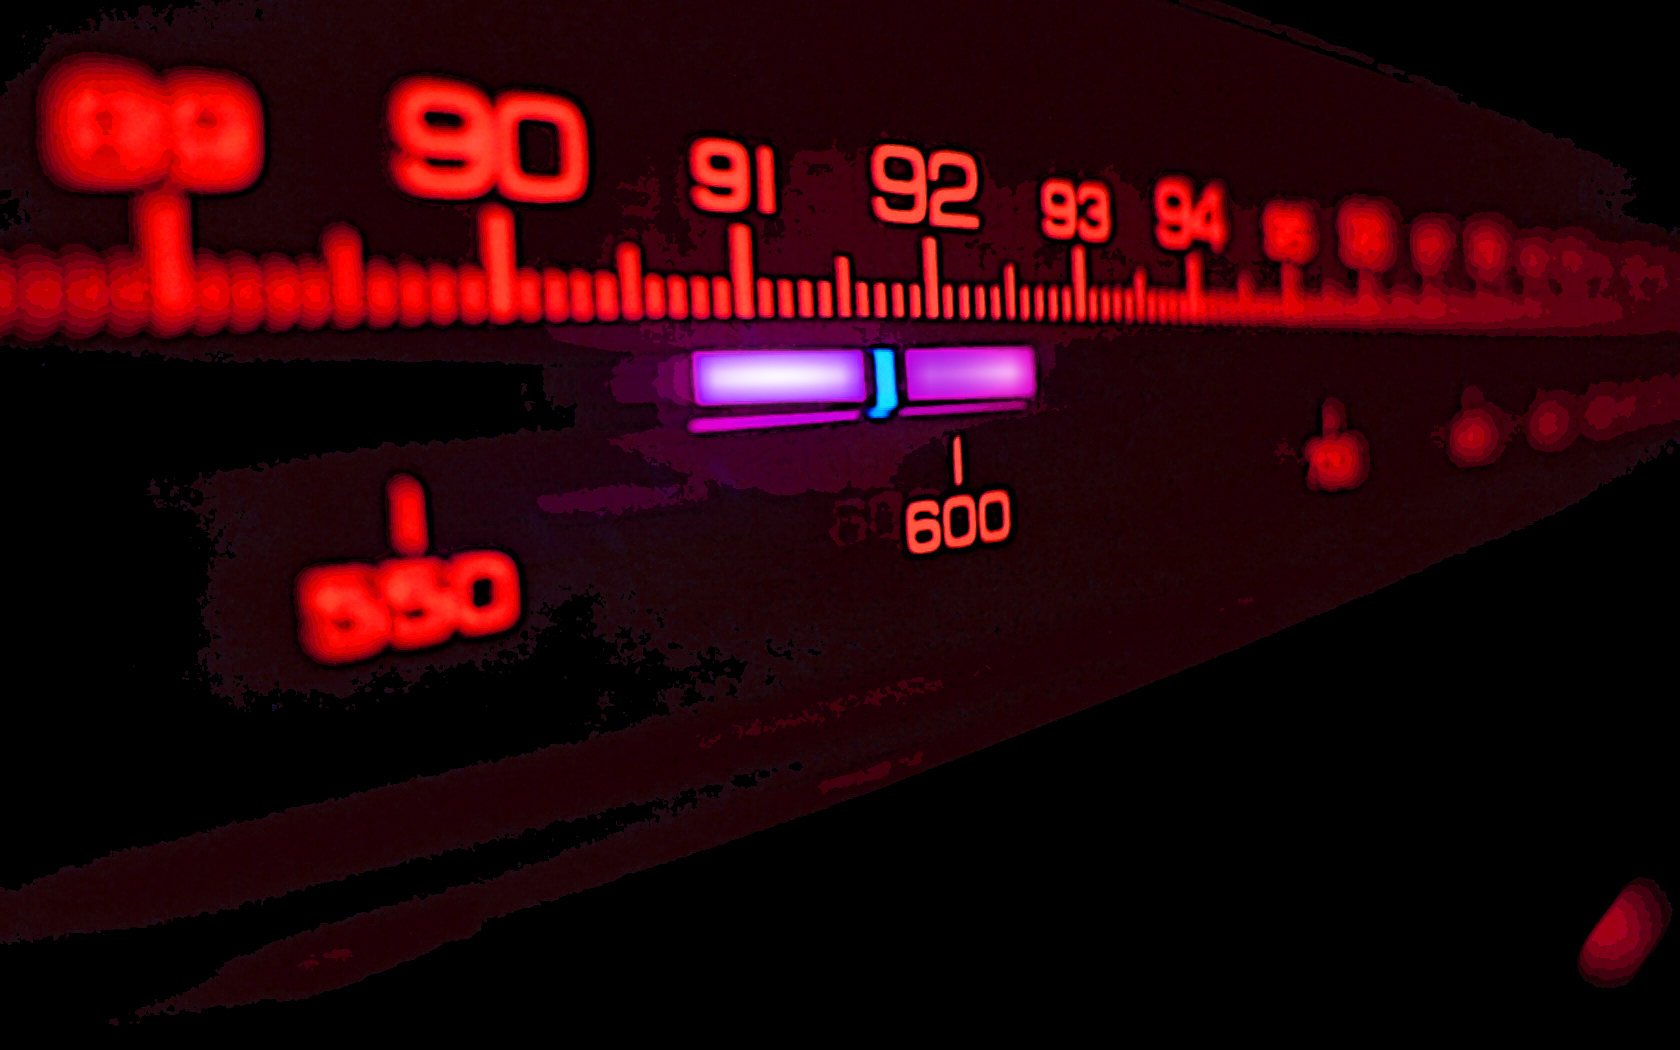 7 radio hd wallpapers background images wallpaper abyss